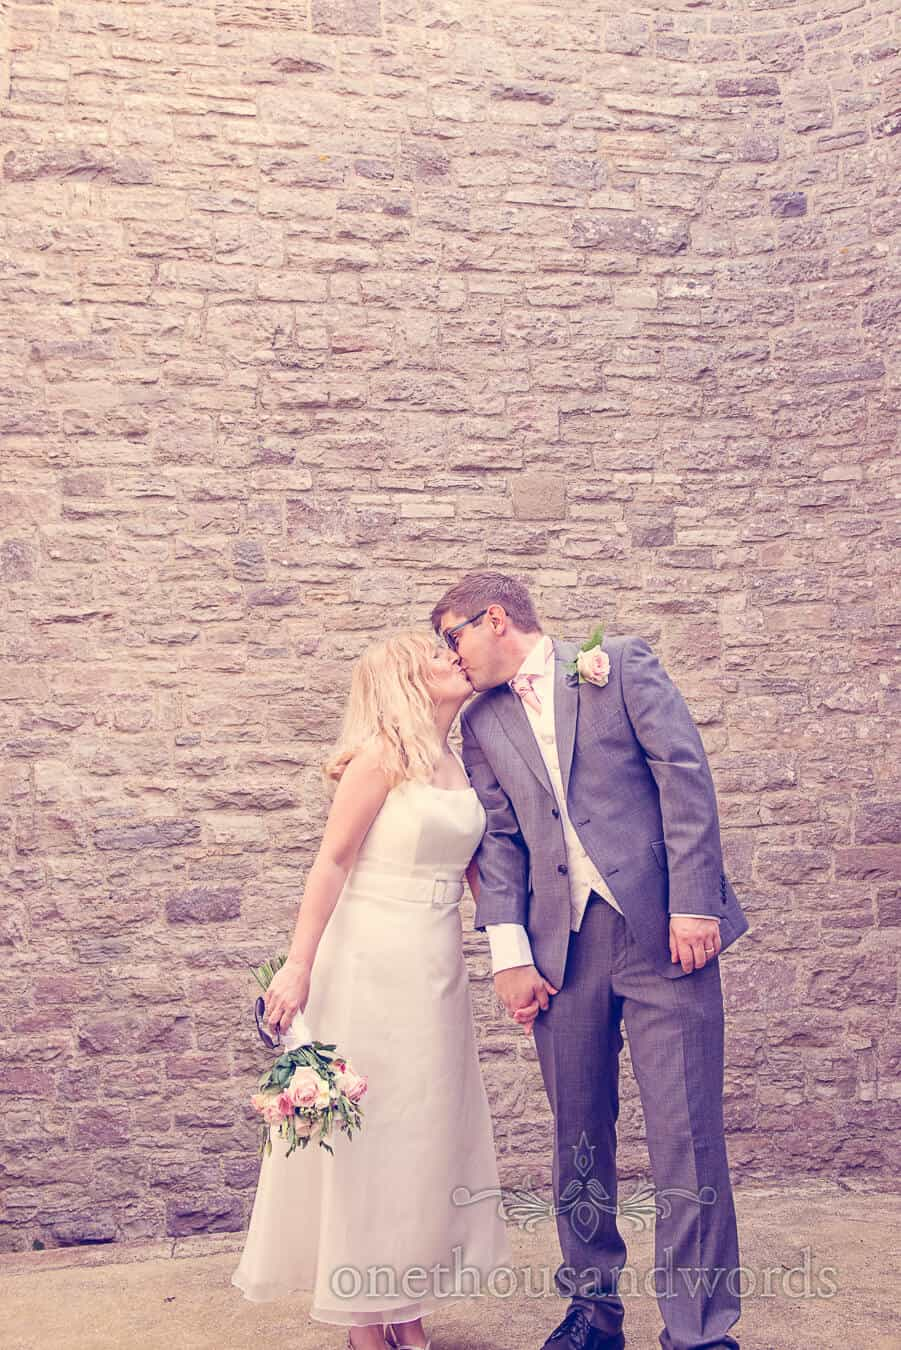 Bride and groom kiss against stone wall at Vintage Style Wedding